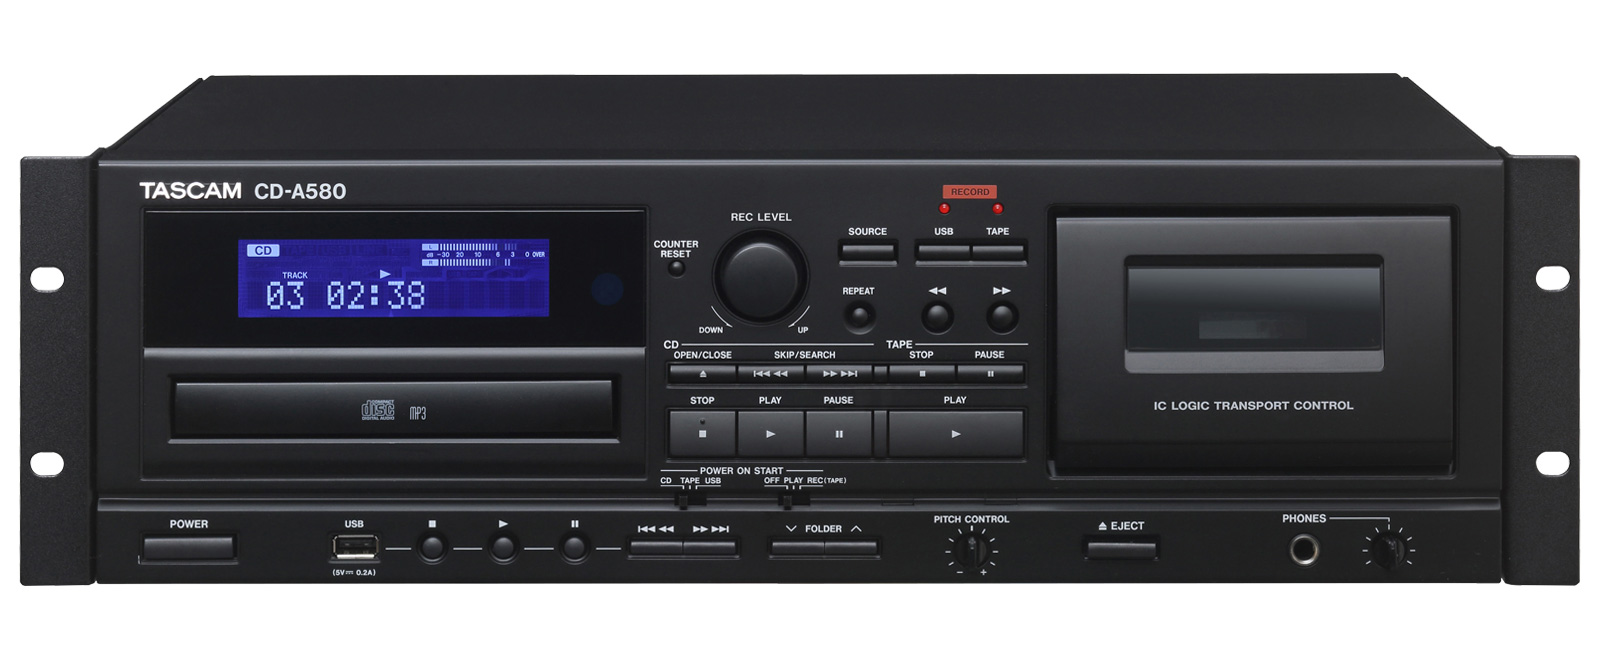 CD-A580 | OVERVIEW | TASCAM - United States